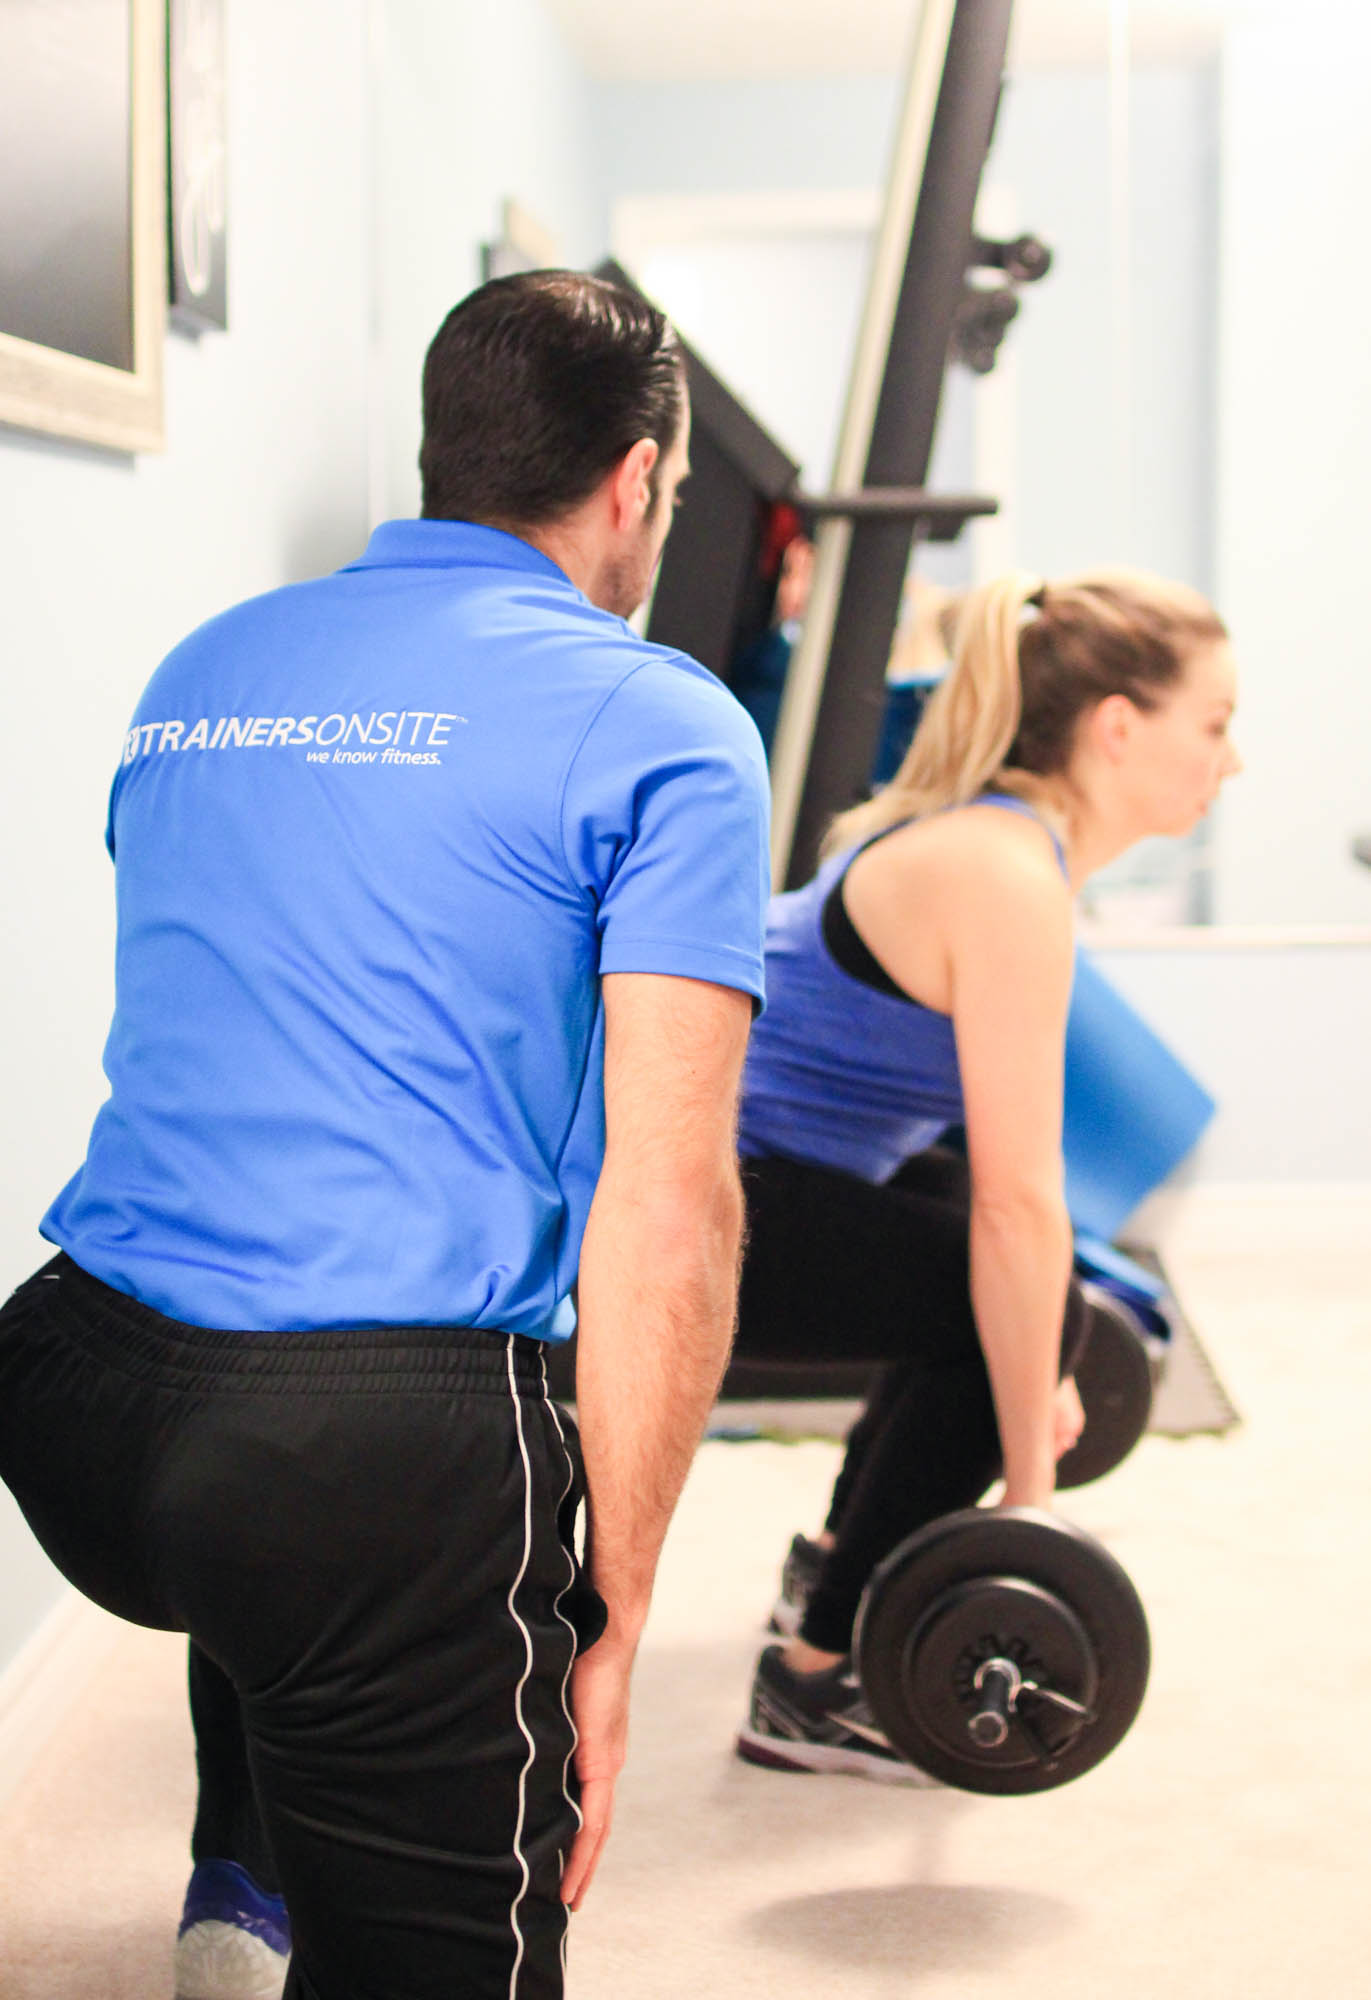 Fitness trainer gets serviced